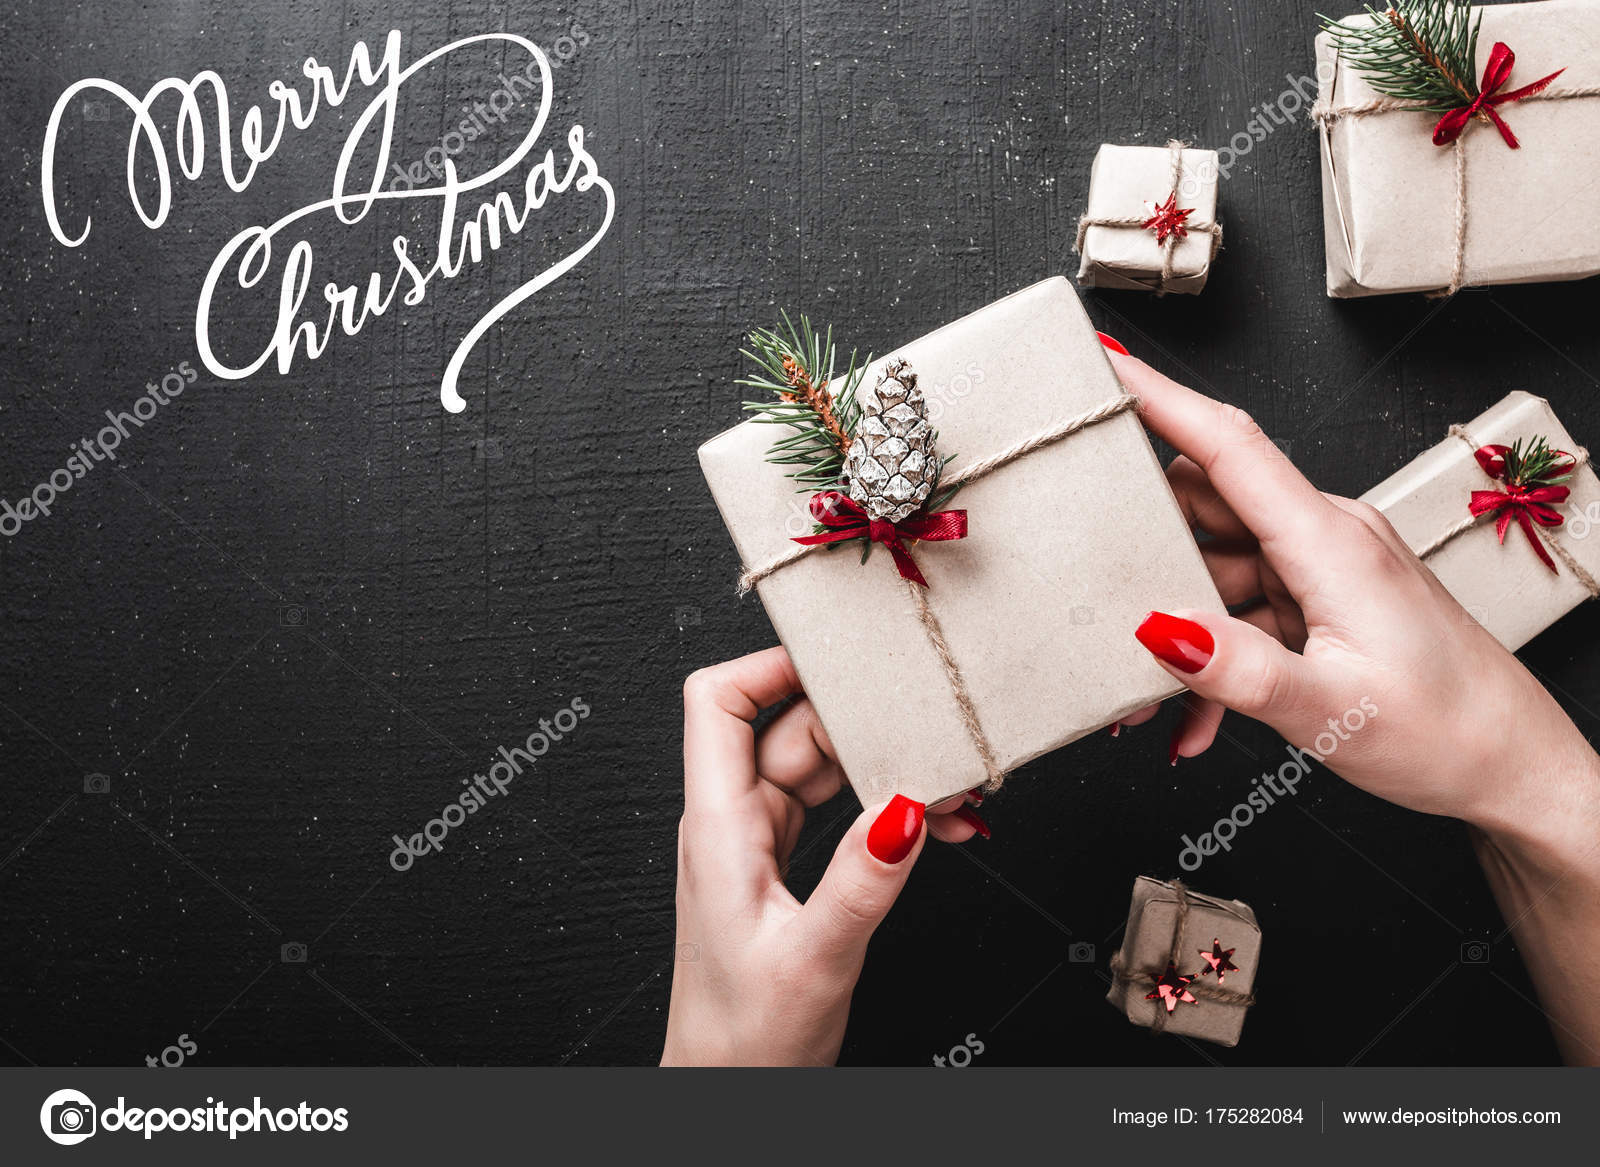 Christmas Card Black Background Lady Holds Gift Her Hands Handmade ...